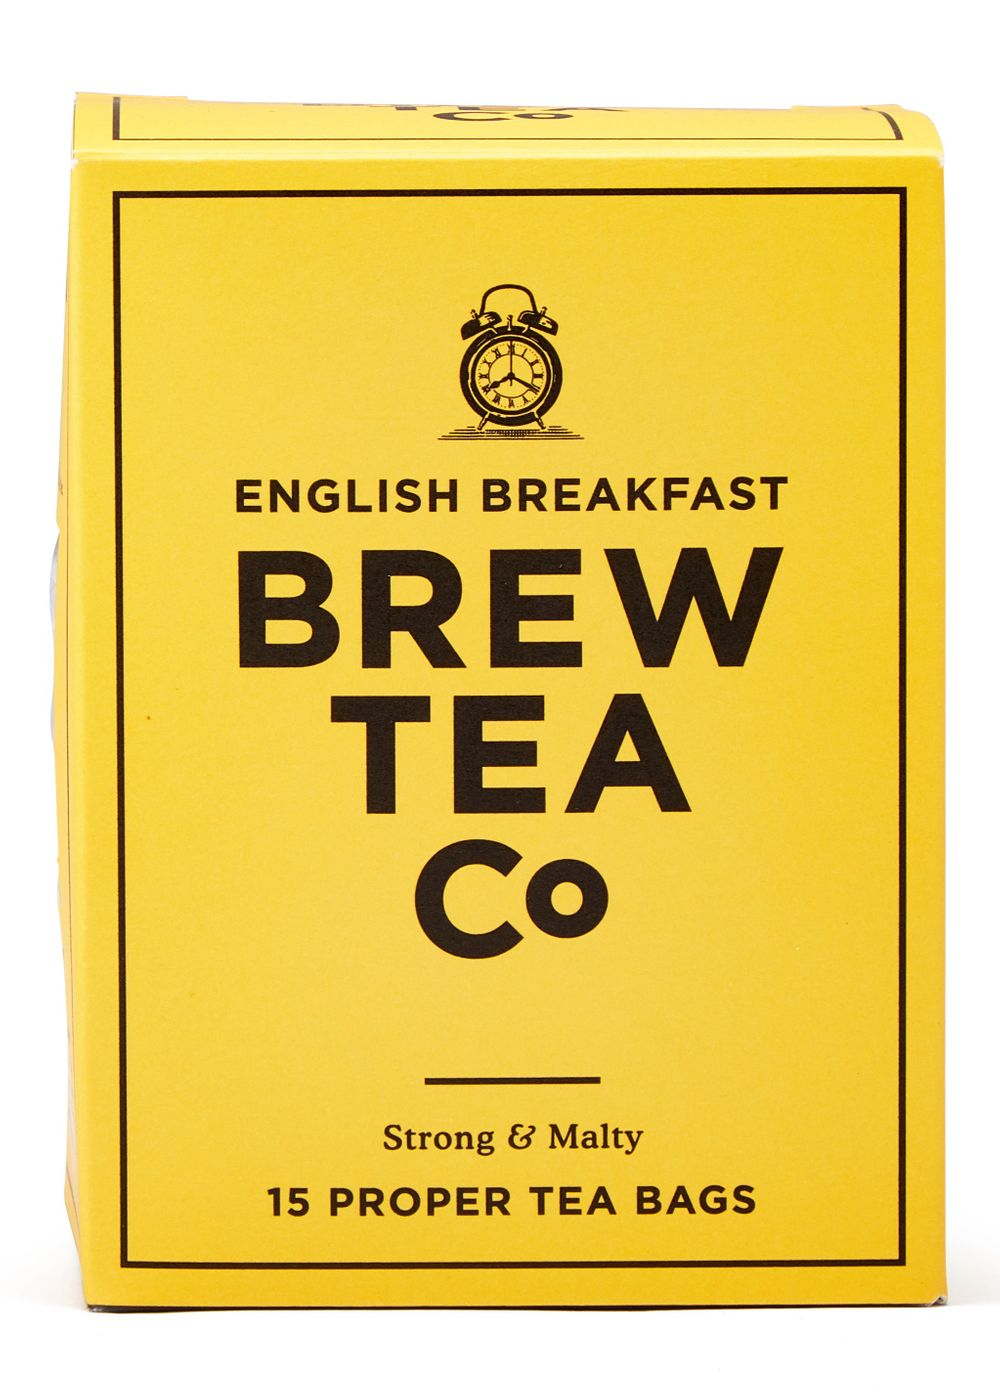 English Breakfast Tea - 15 Proper Tea Bags